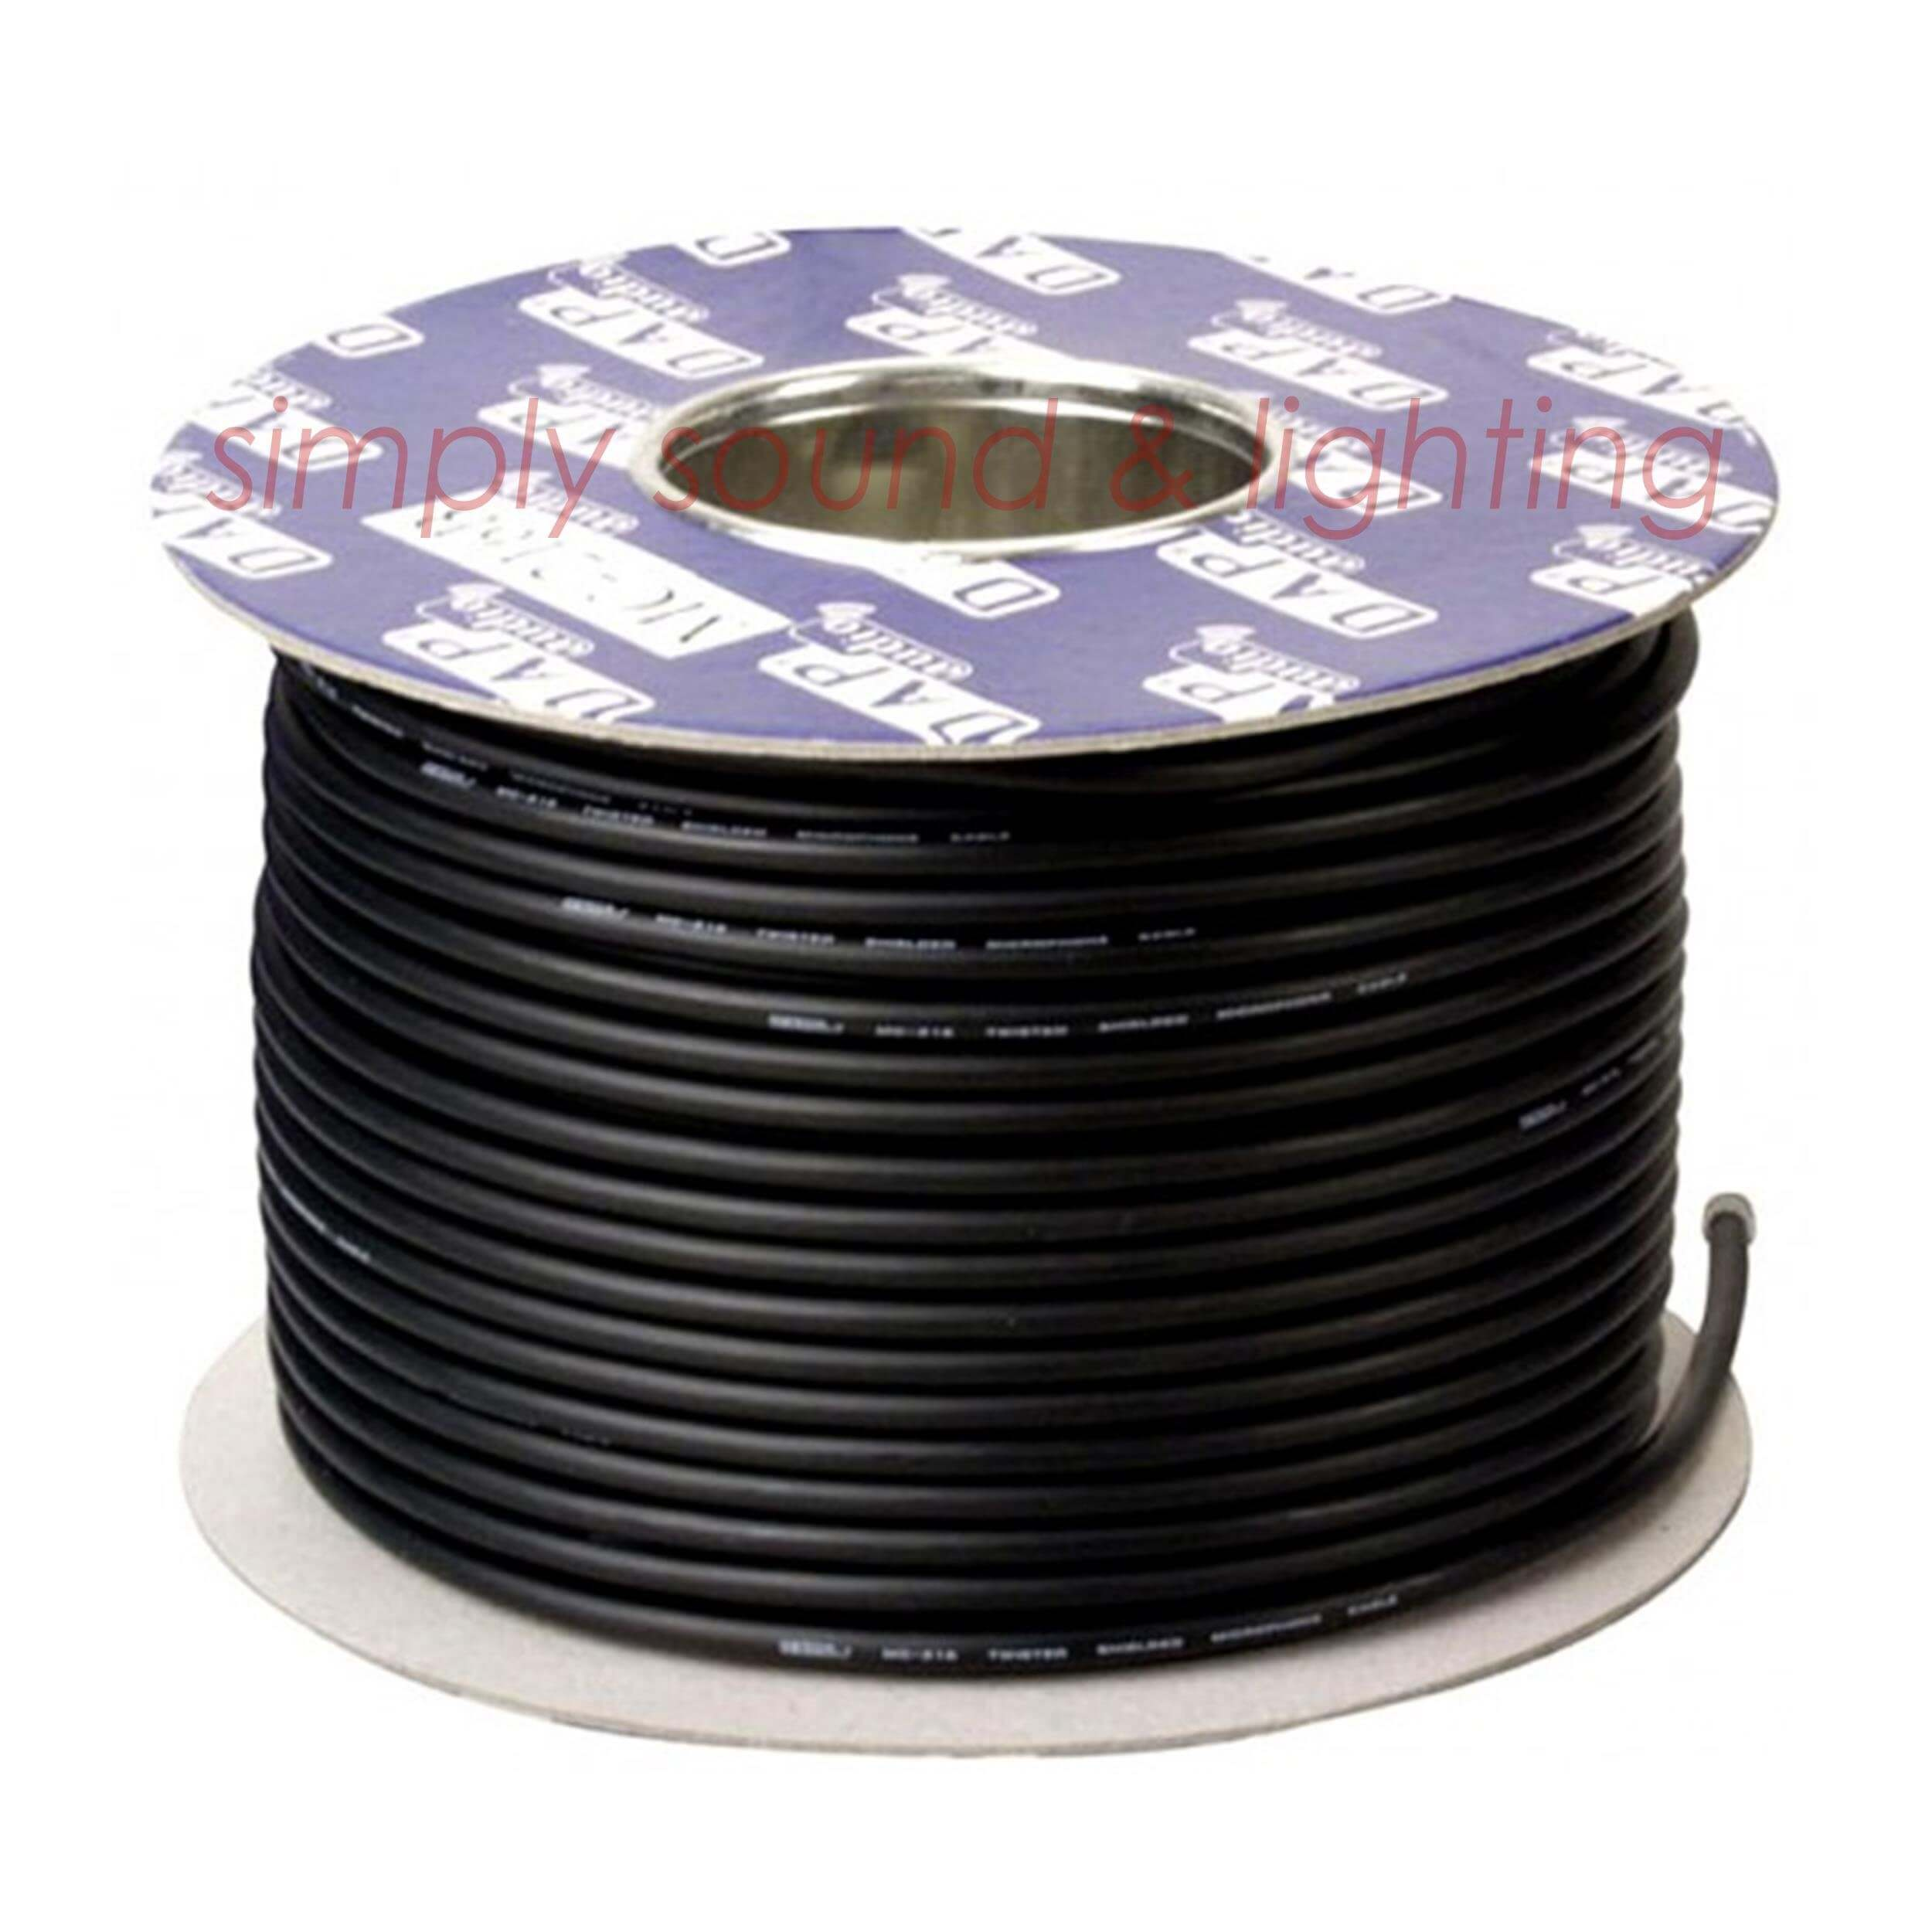 DAP 100m DMX Cable Black 110 Ohm Digital 3 Core